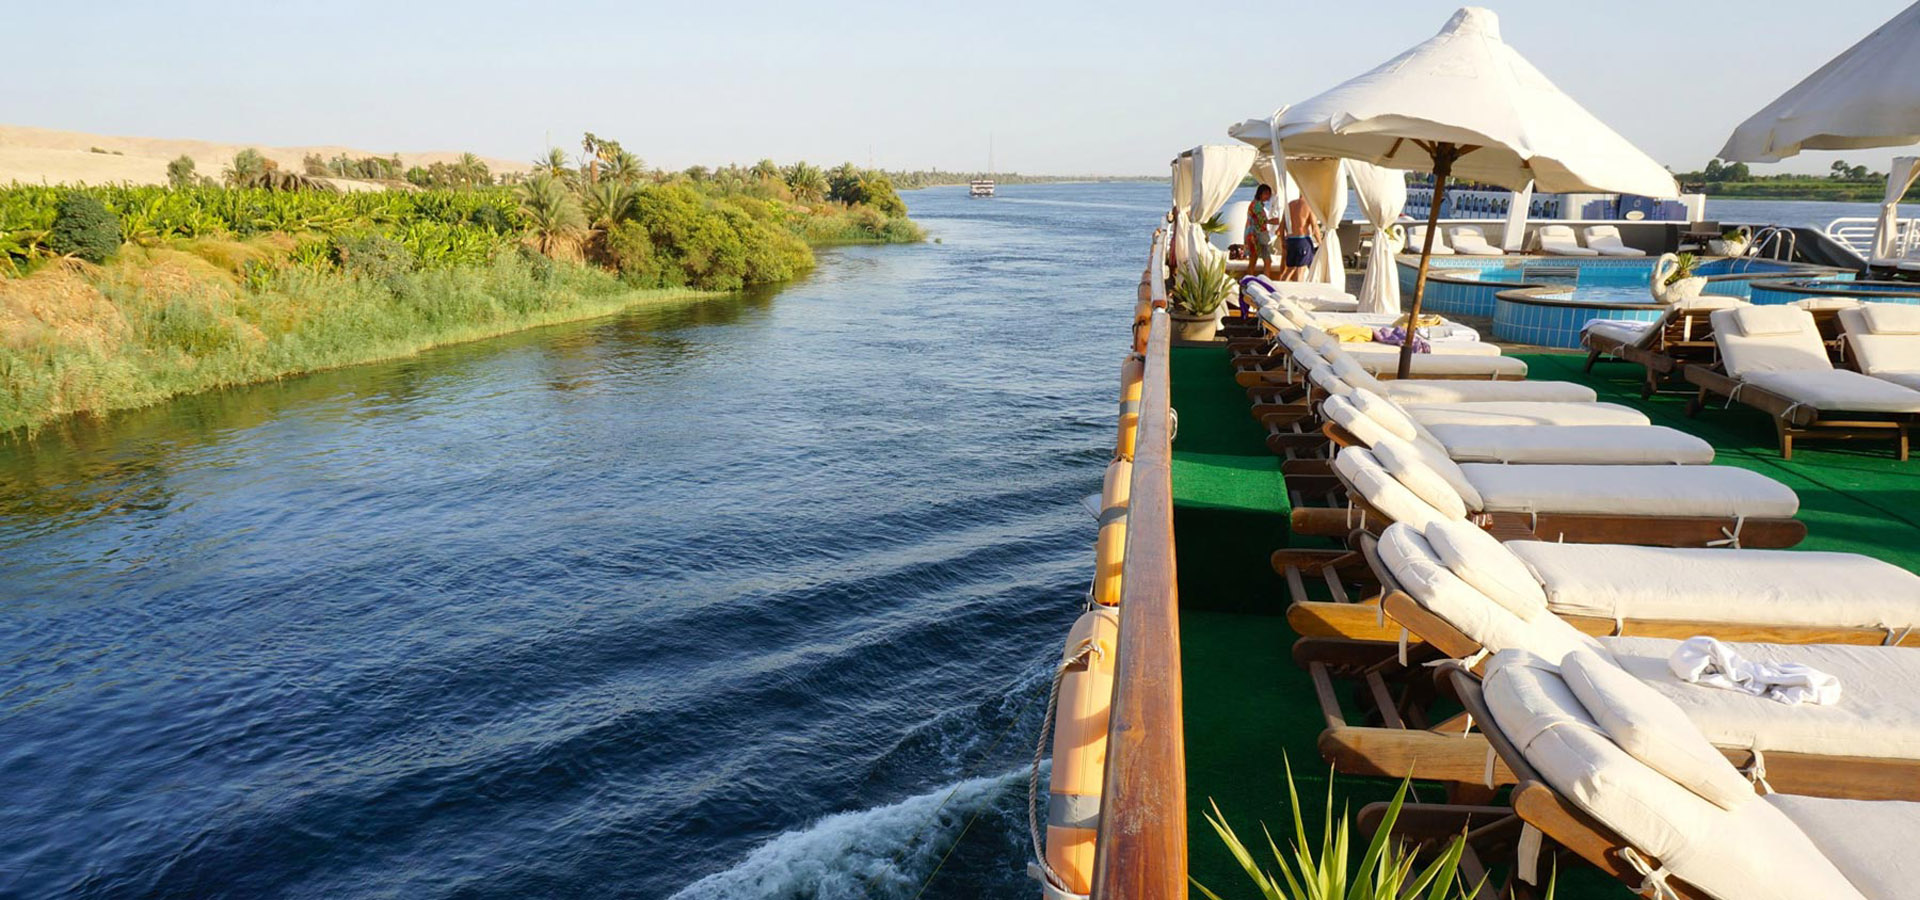 Cairo Alexandria Nile Cruise & Hurghada 11 Day Tour Package